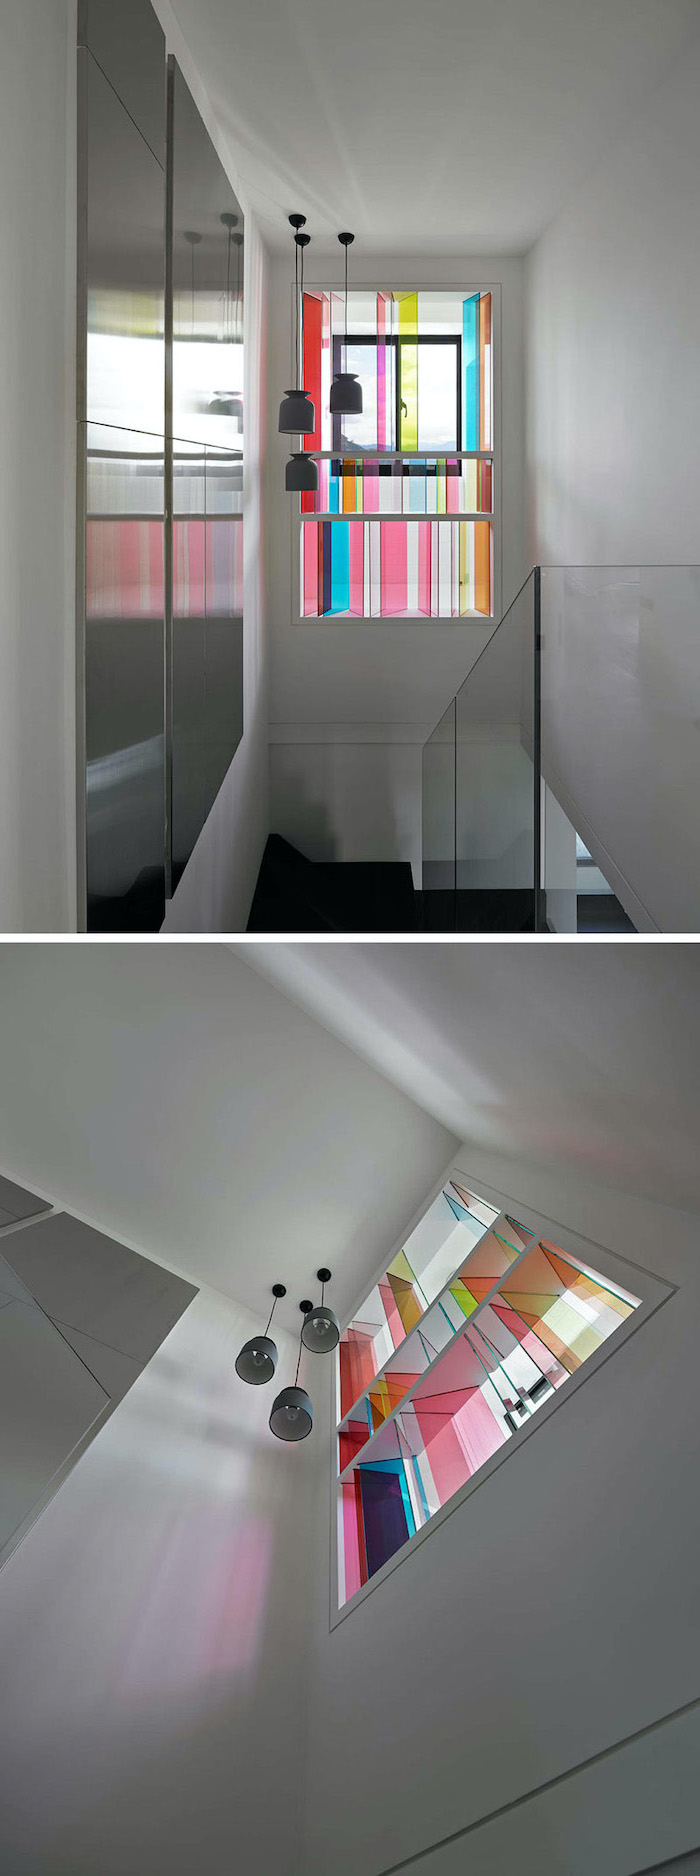 two photos of a hallway and staircase, window between the floors with colored windows, stained glass doors